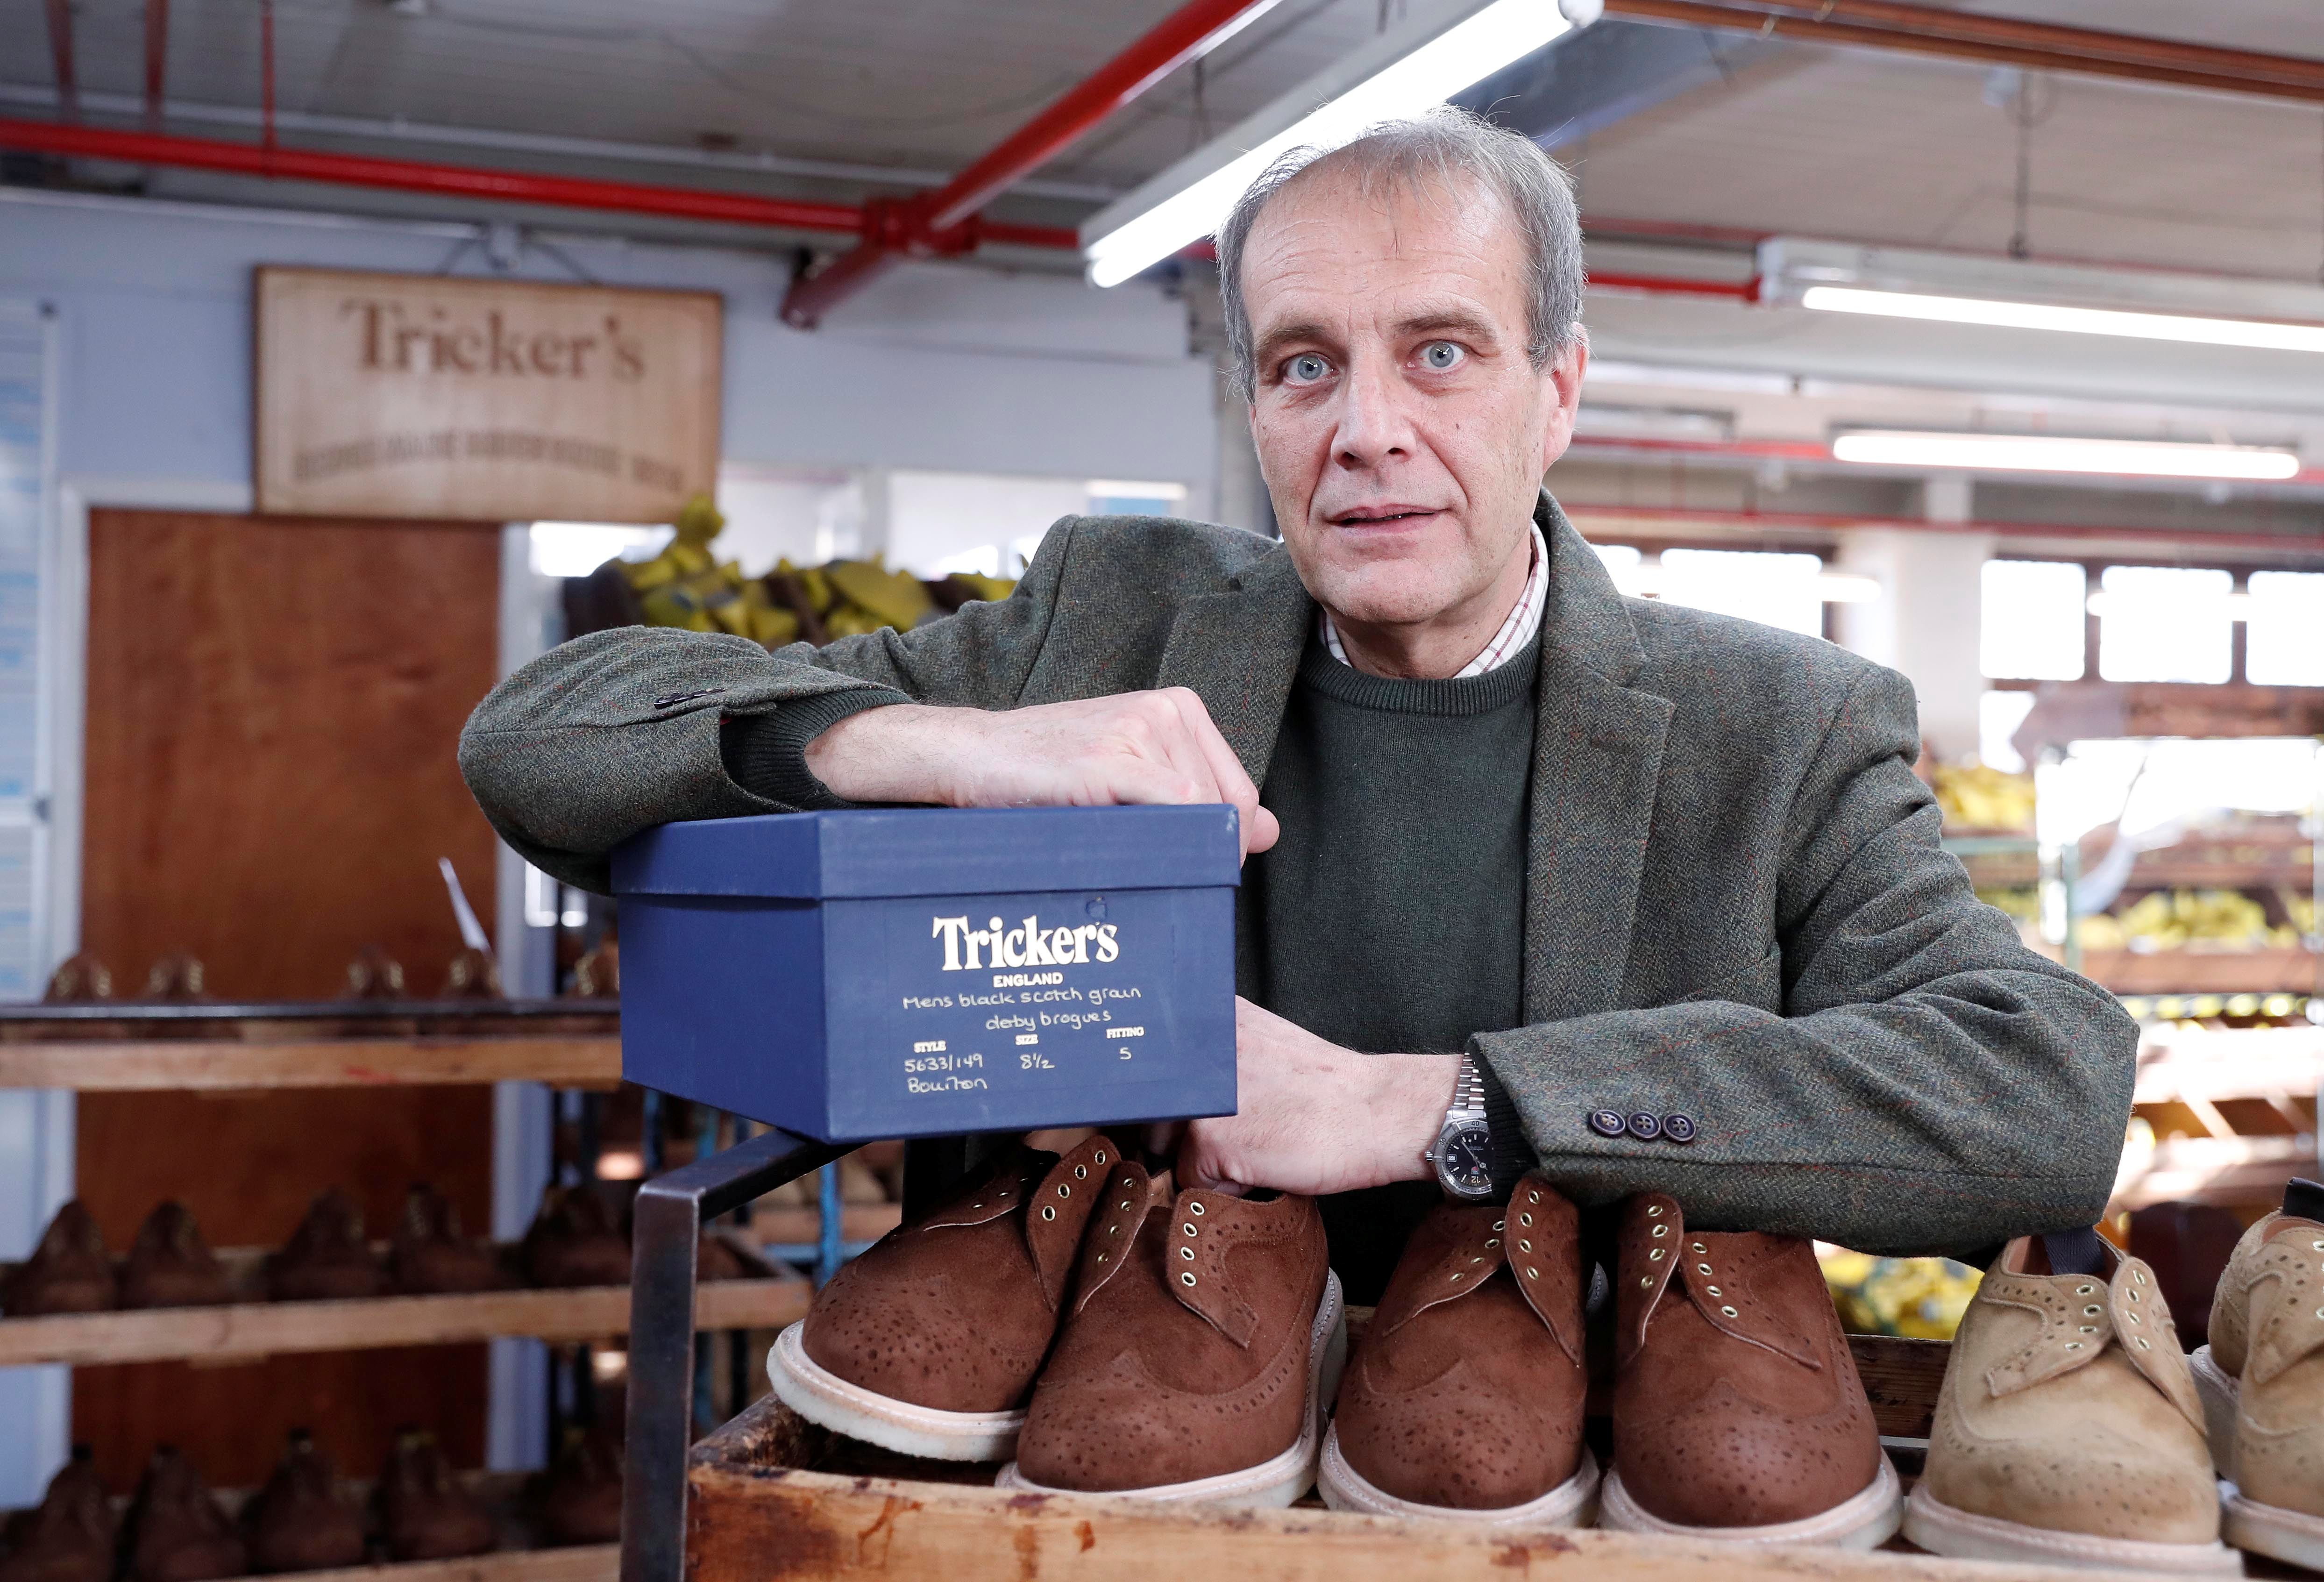 Martin Mason, managing director of British luxury shoemaker Trickers poses for an interview where he discusses European Union customers affected by new tax costs and an increase in product returns, in Northampton, Britain, January 25, 2021.   REUTERS/Matthew Childs